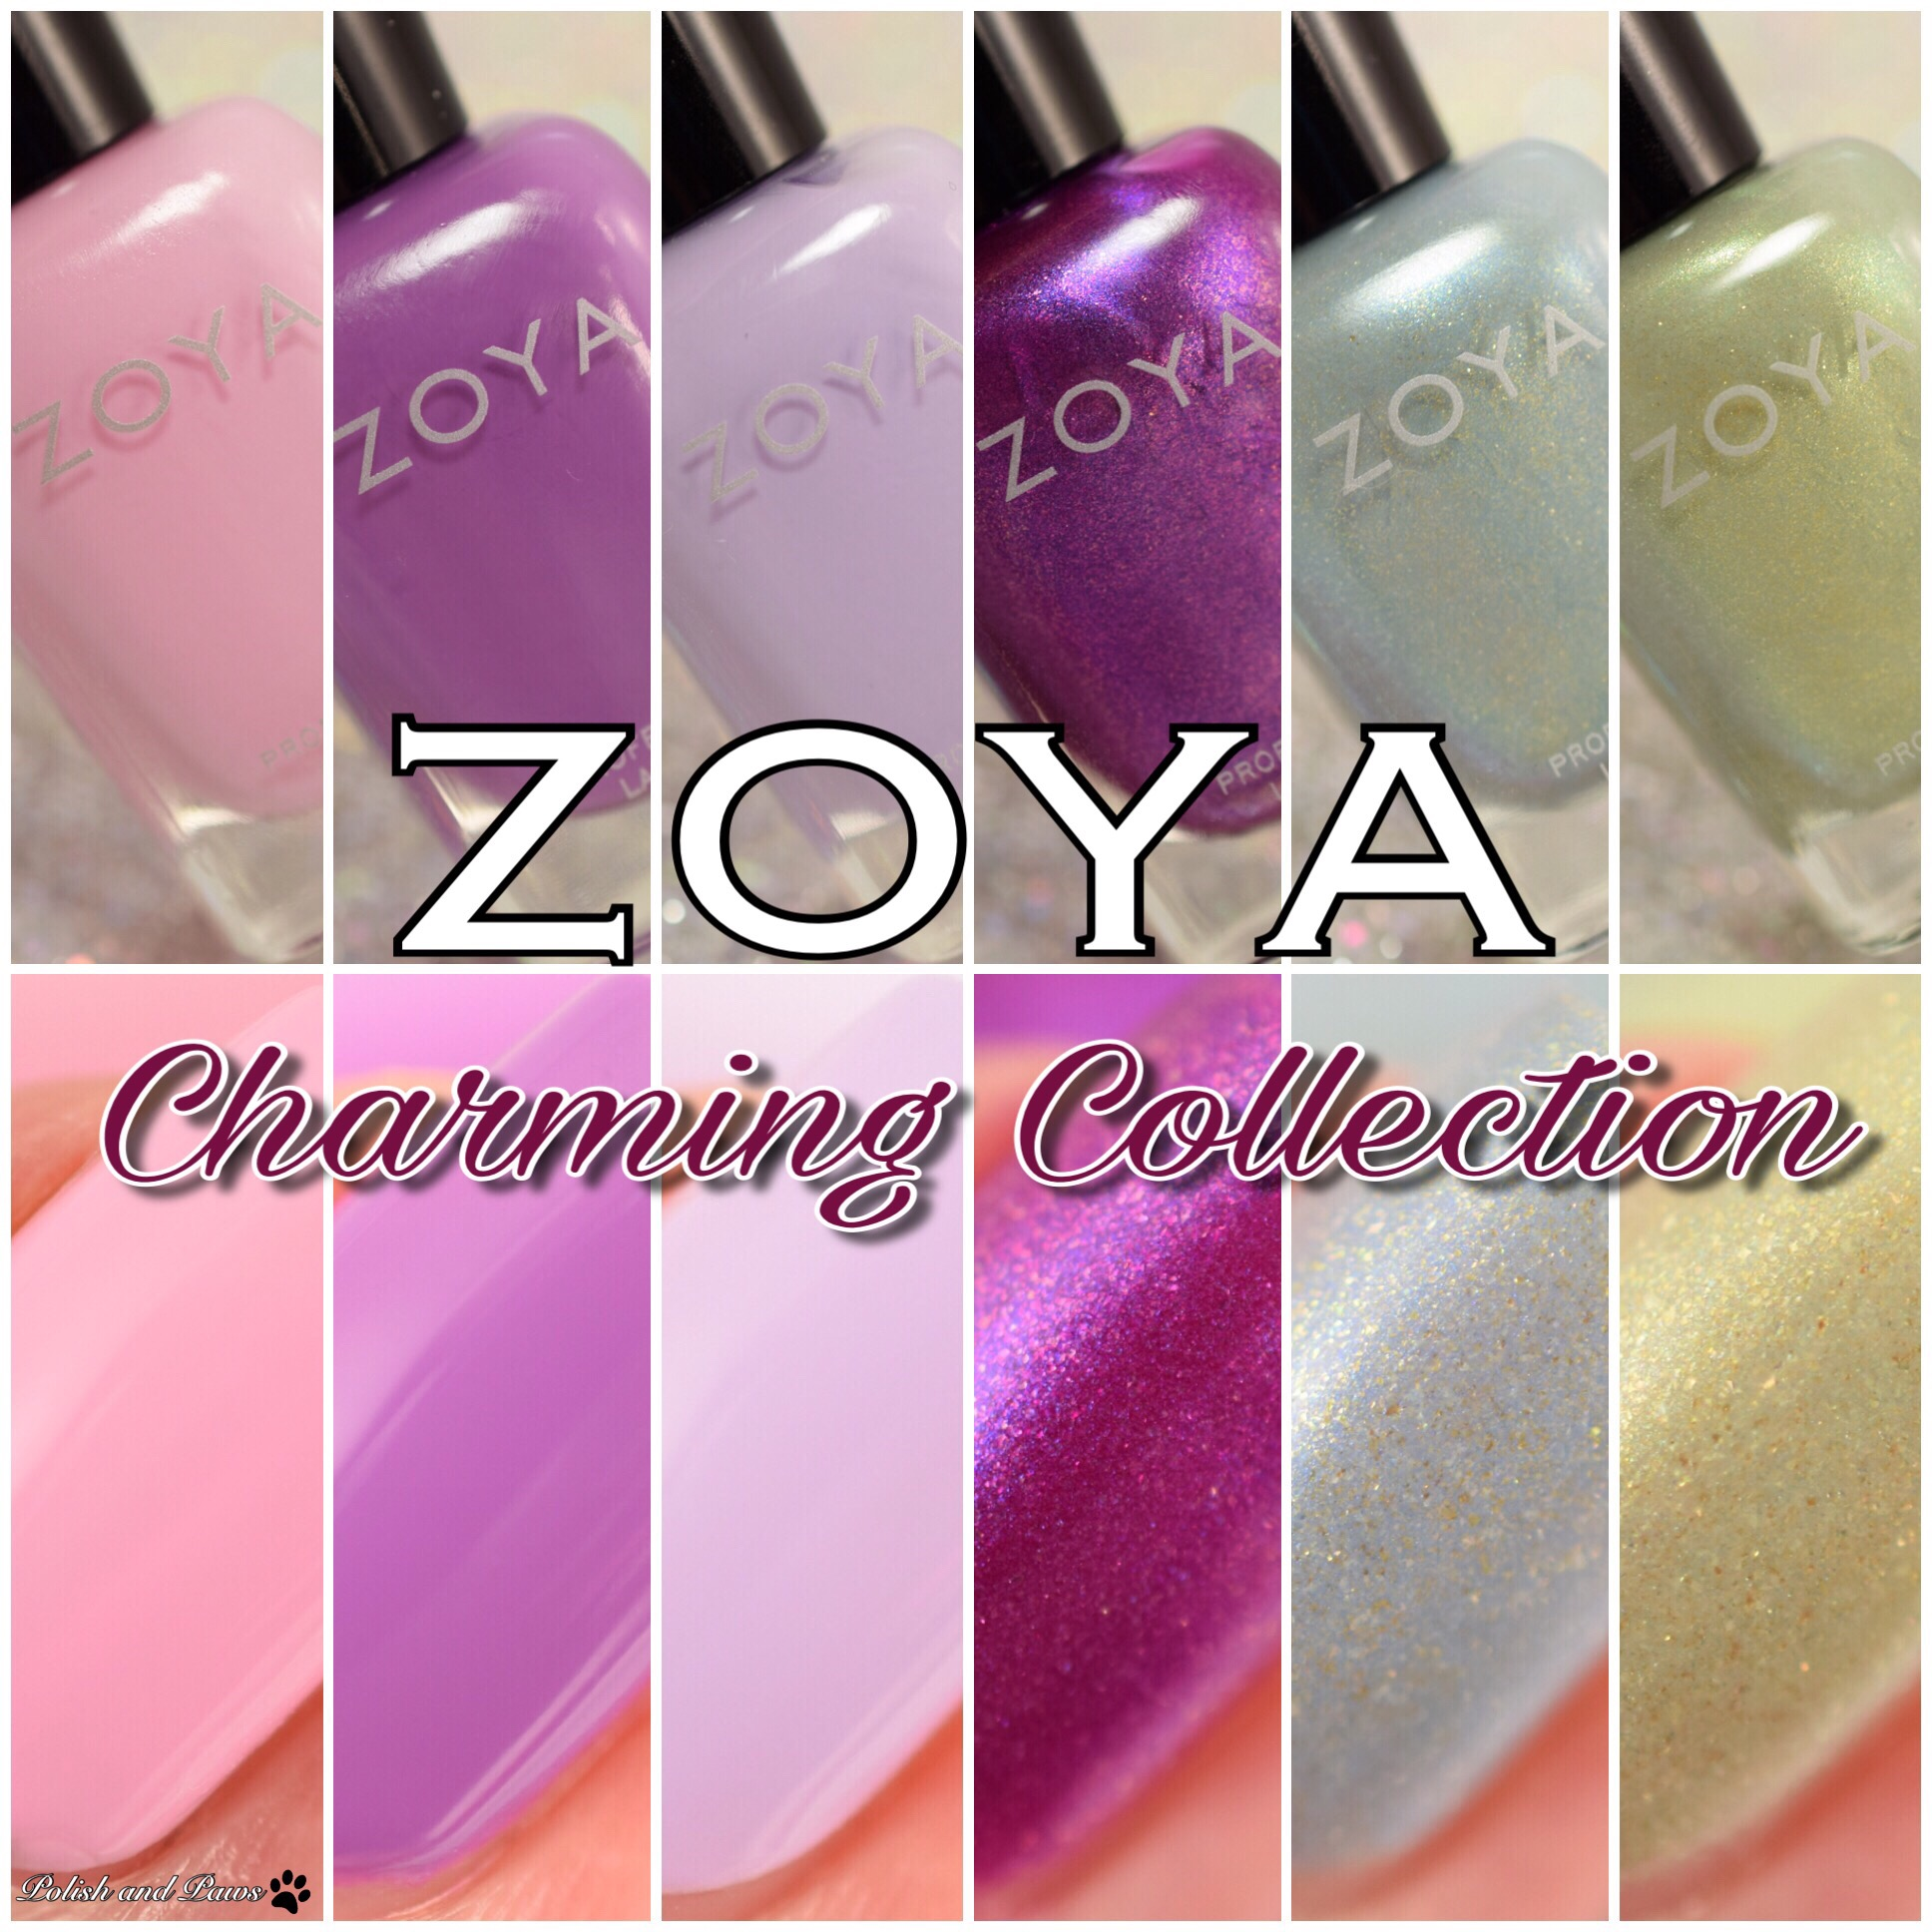 Zoya Charming Collection